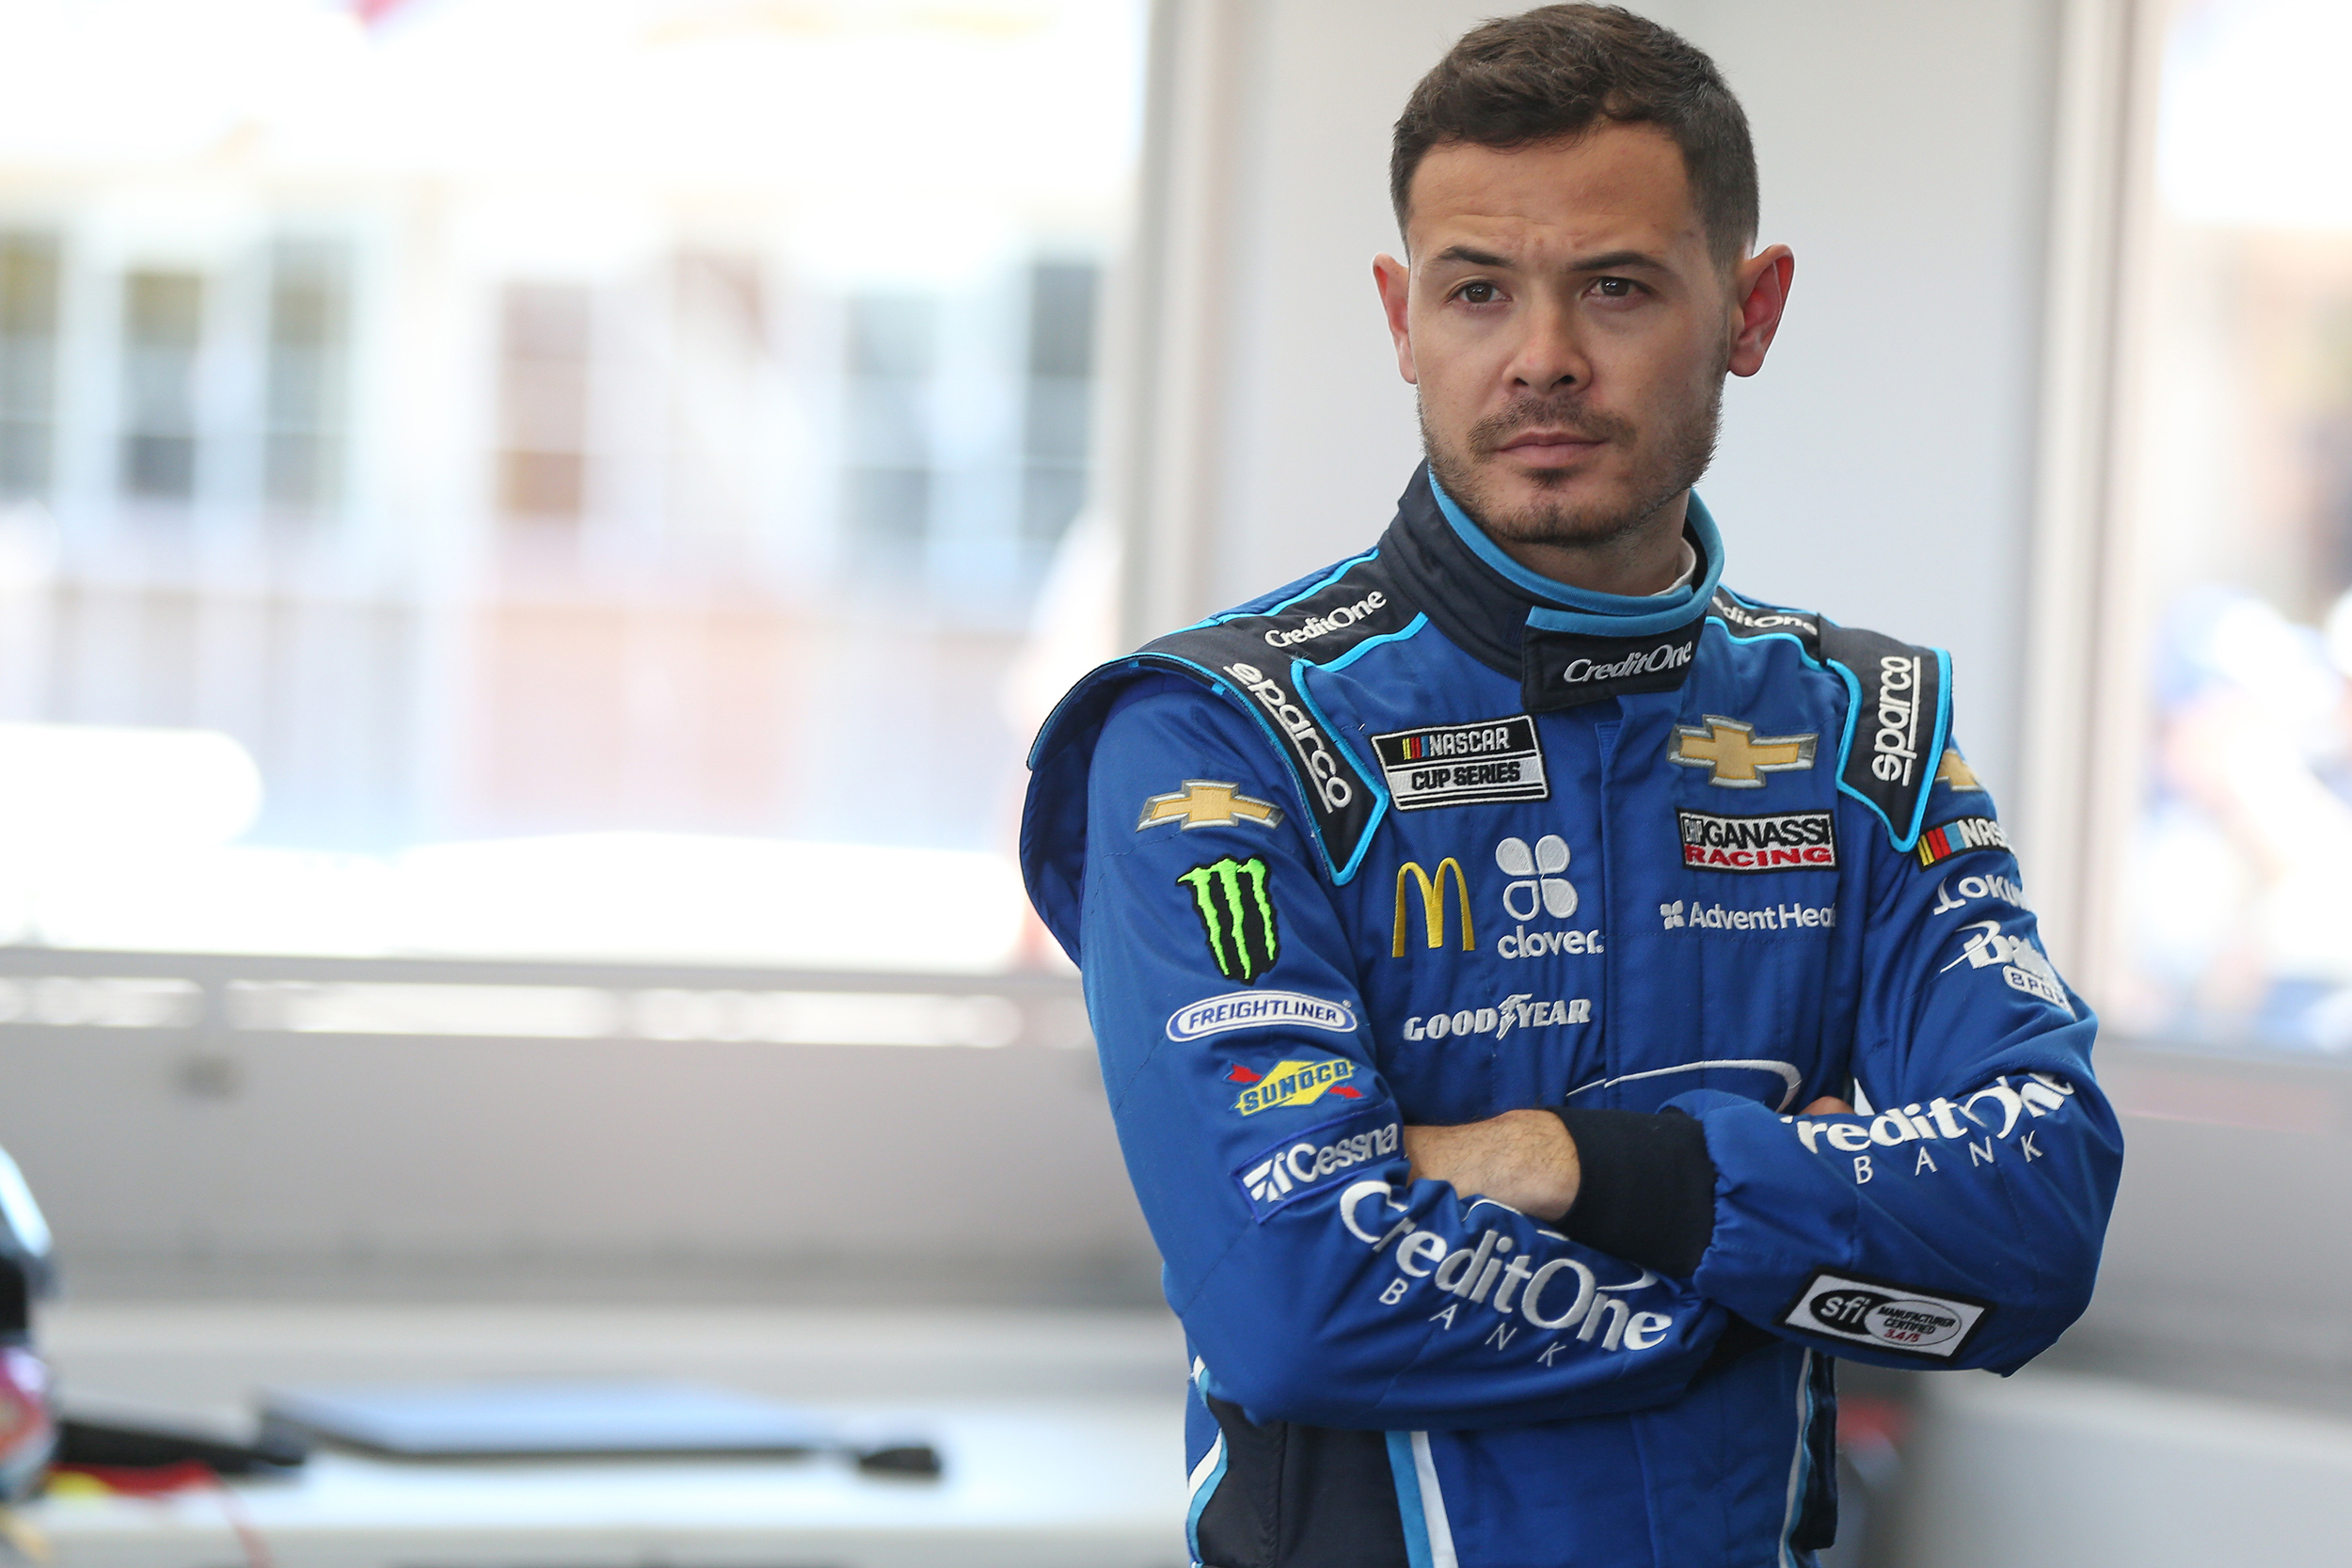 NASCAR star Kyle Larson fired by his team after saying N-word during  virtual race